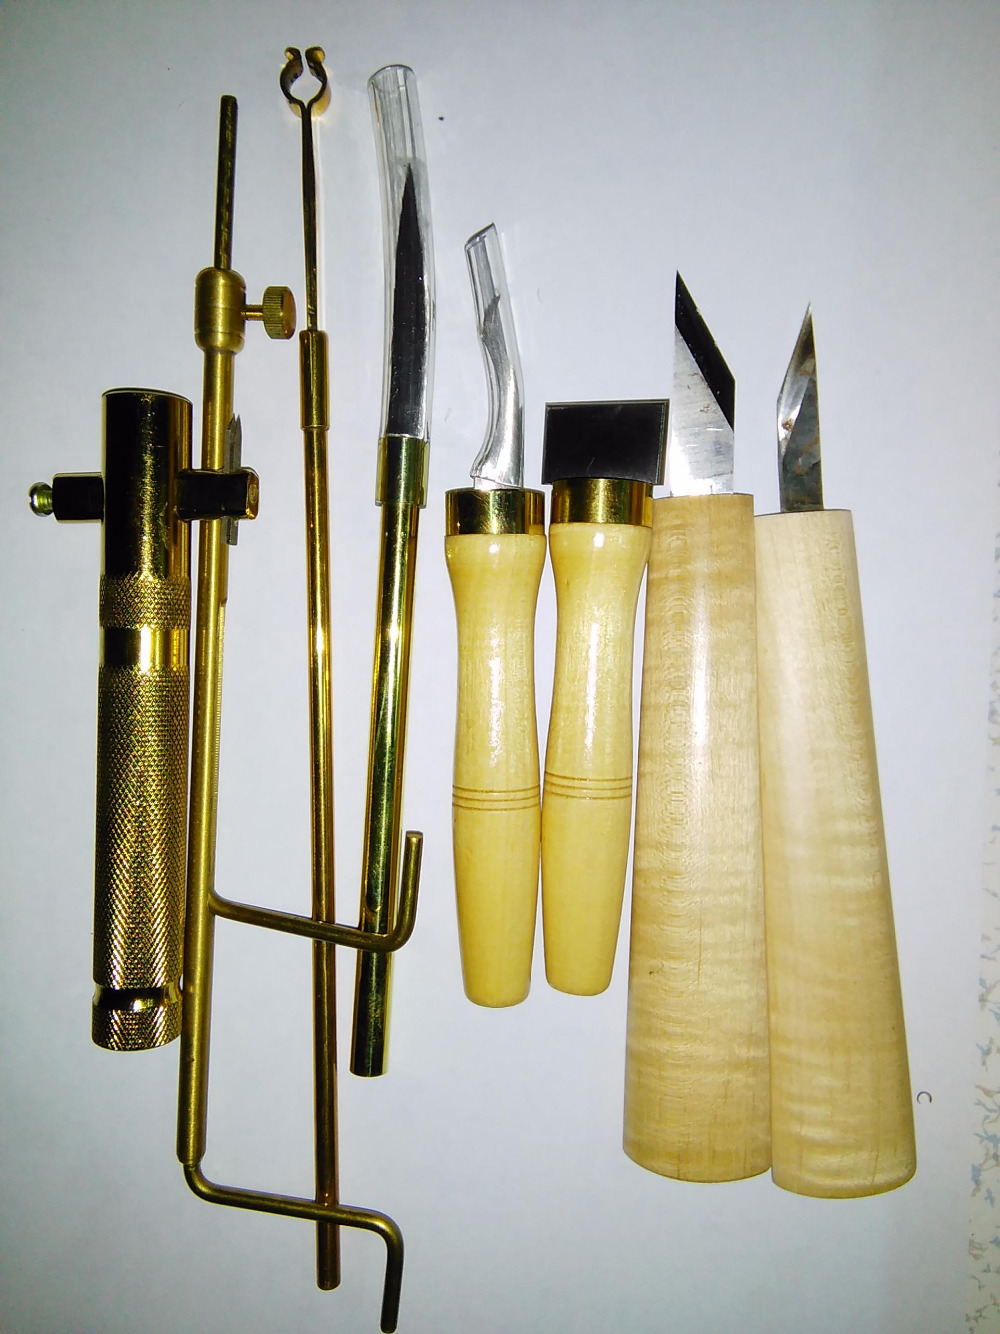 8 PCs Luthier tools for Cello use including cutter repair knife scraper inlay tool post gauge purfling knife etc 3 pcs brass cello tools cello sound post setter retriever gauge luthier tool